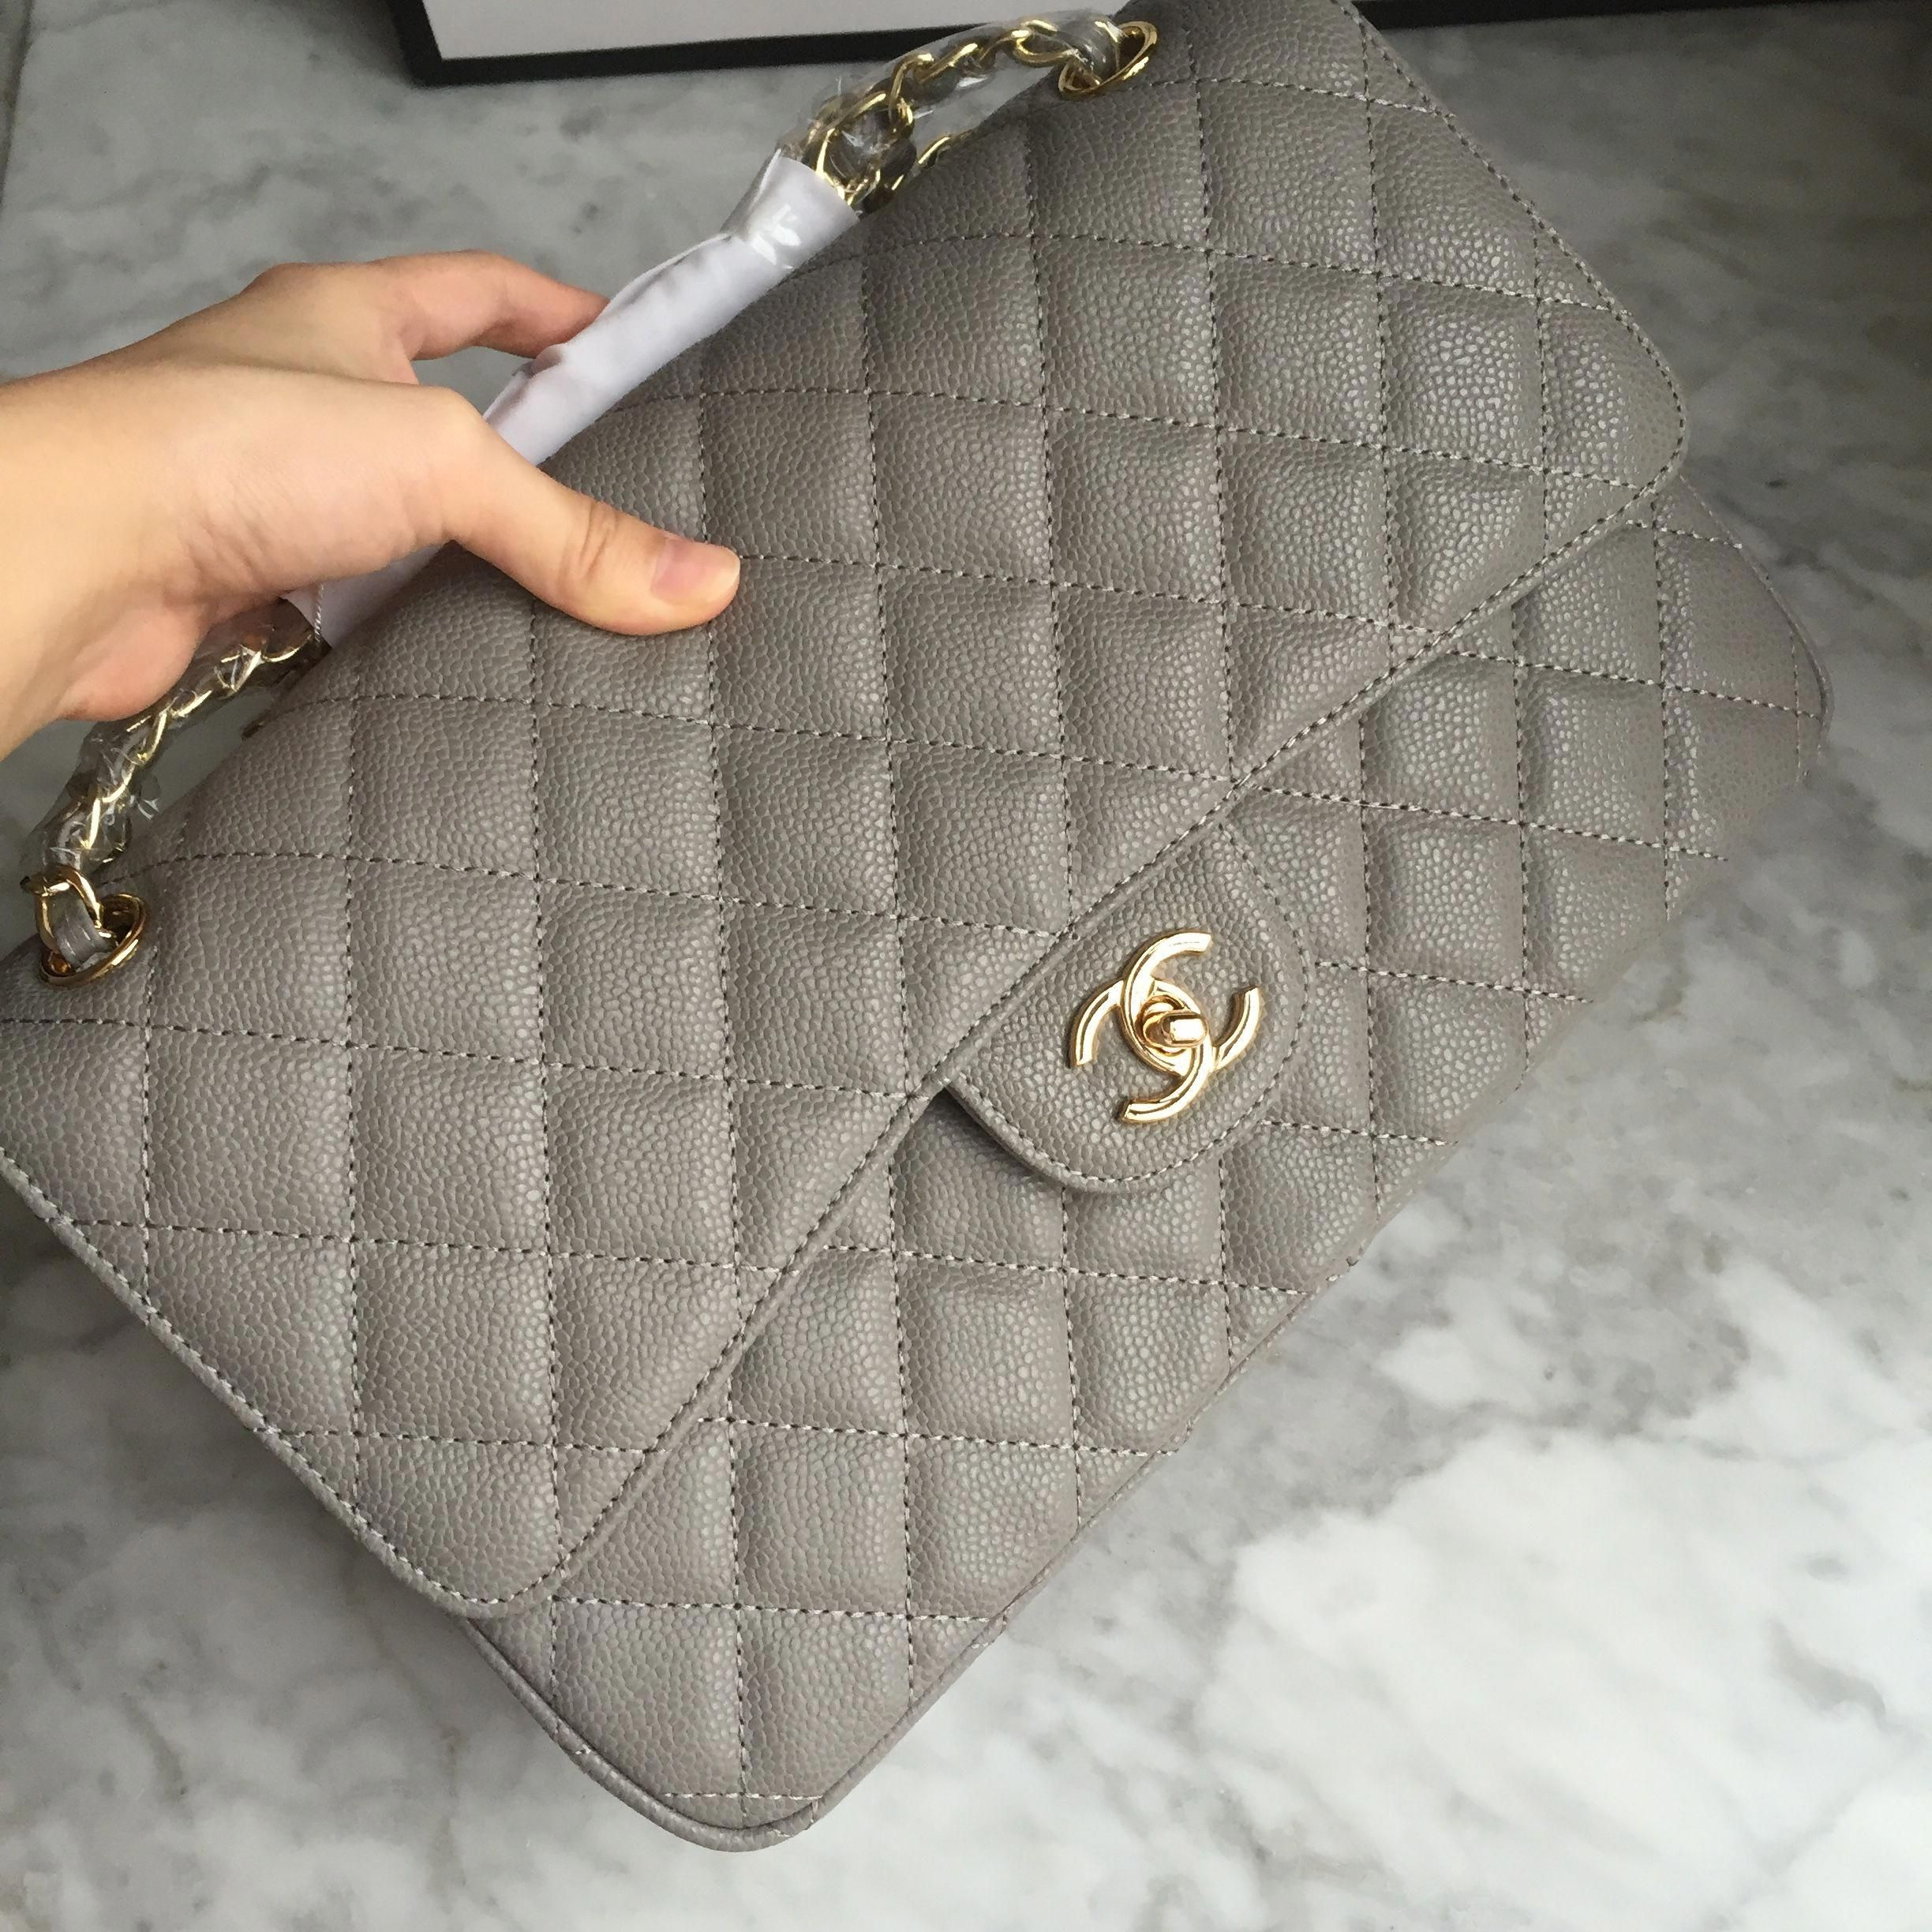 3755e6ca3bc3 Chanel woman 2.55 double flap bag caviar gray gold jumbo size  #WomensShoulderbags